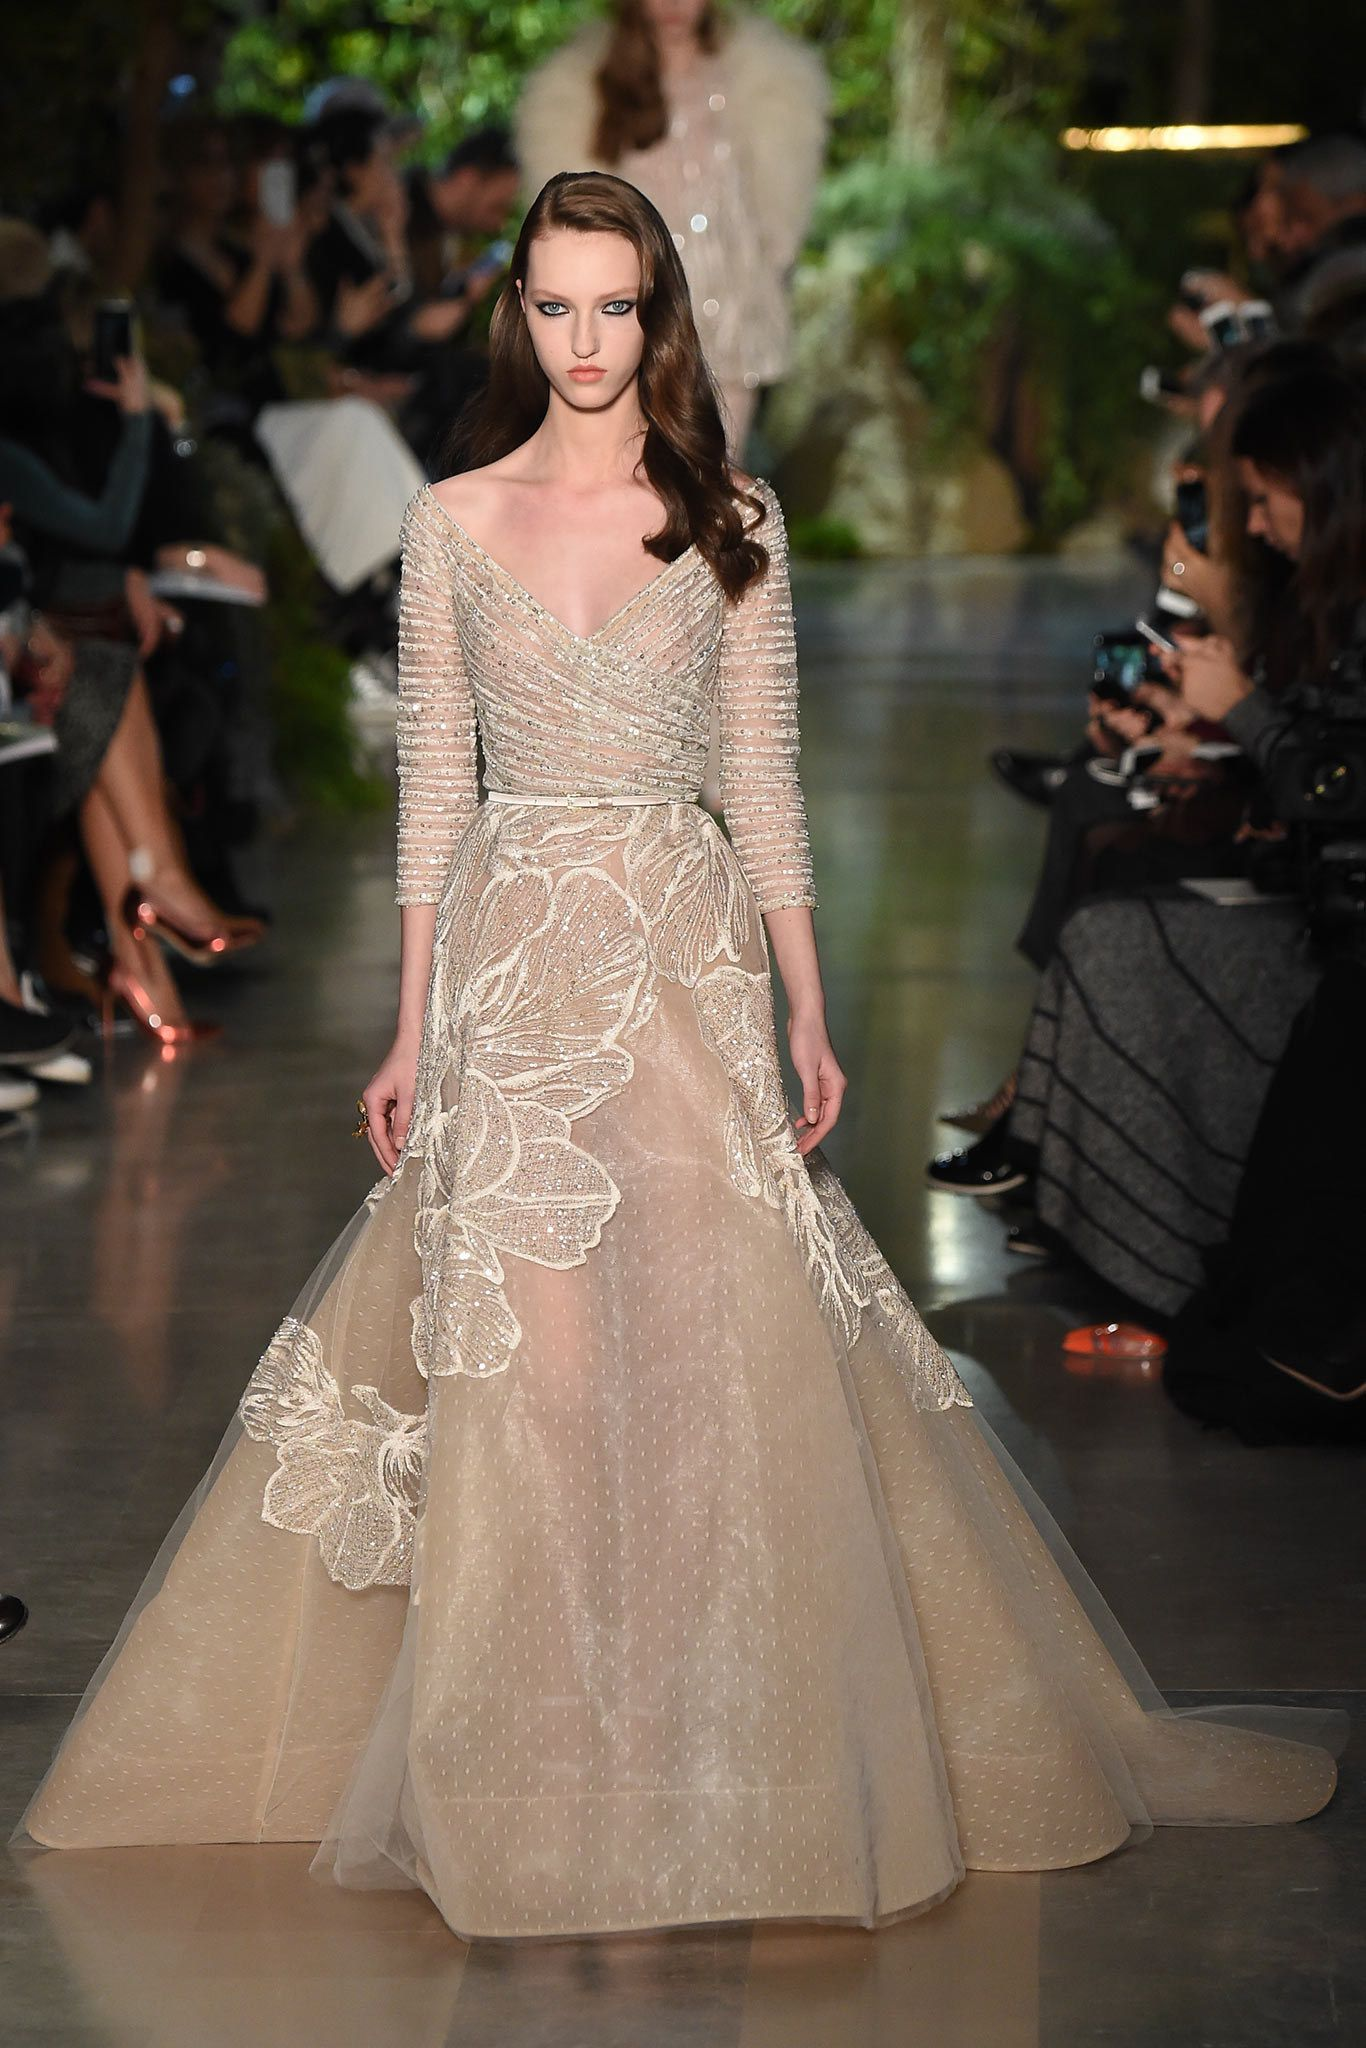 Elie Saab Spring 2015 Couture Fashion Show - Lindsey Wixson